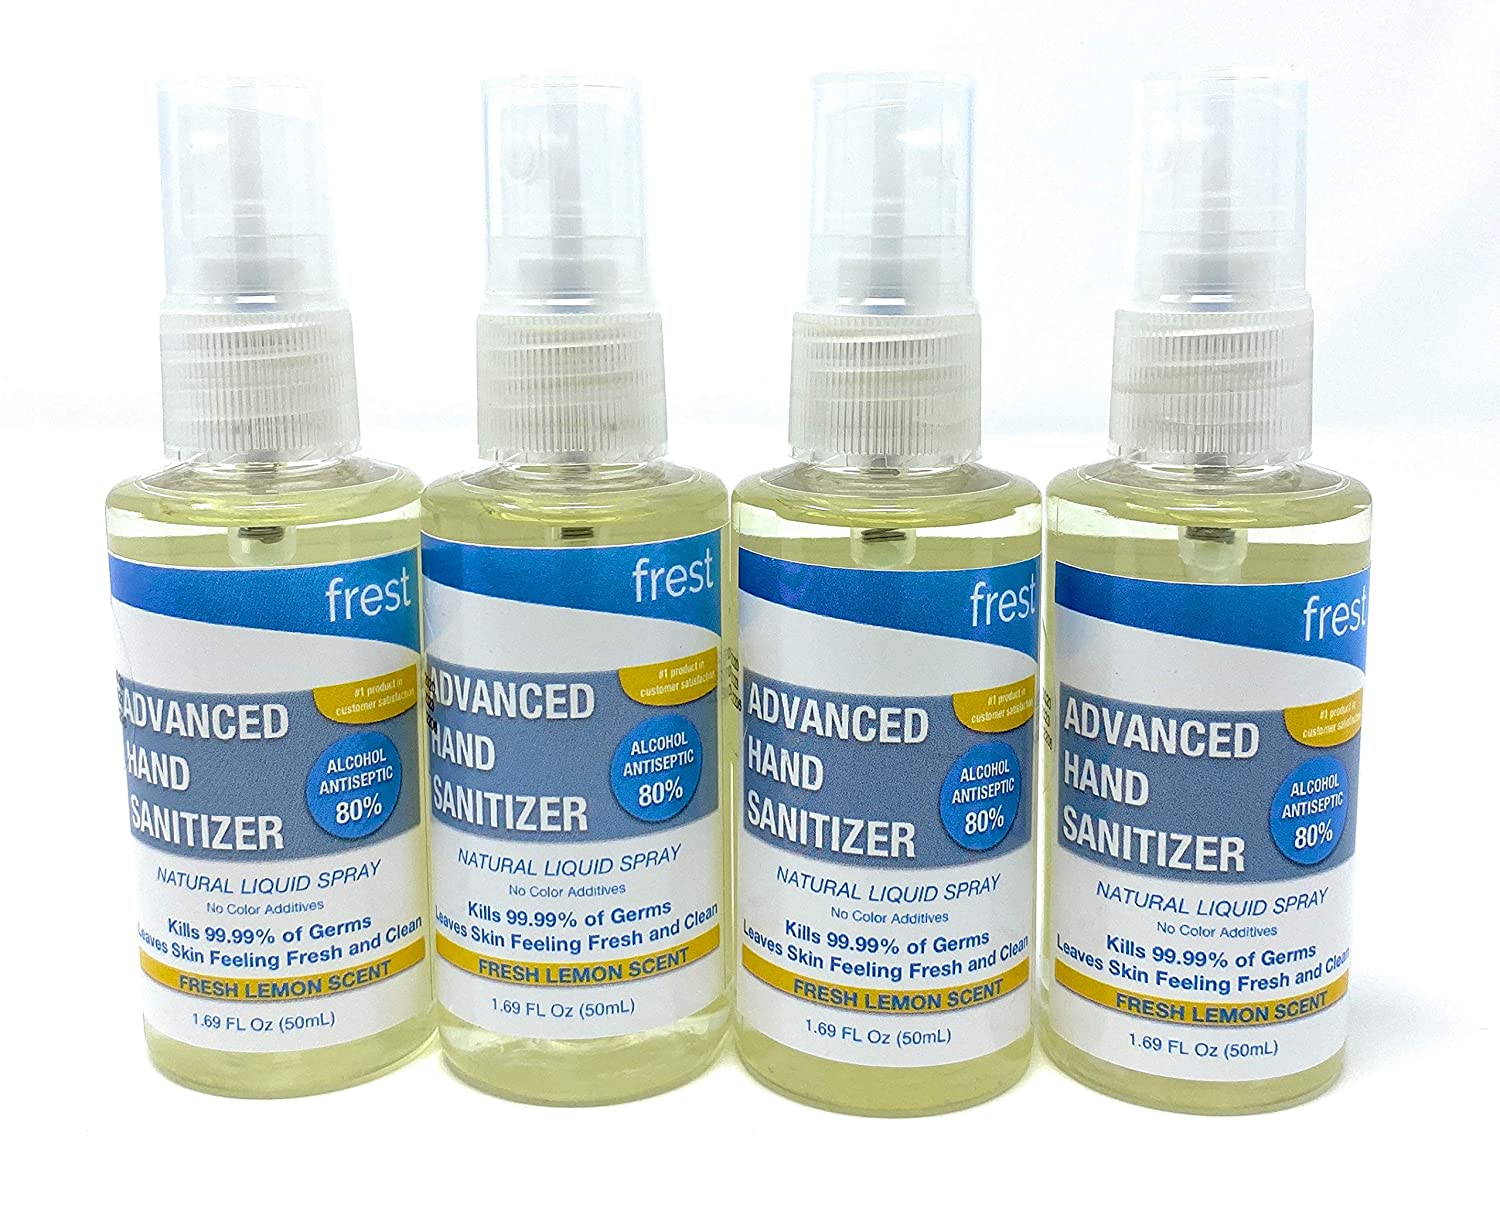 Tulsa Mall 4 Pack - Frest Natural 80% Based OFFicial site Hand Sanitizer Alcohol Ethyl